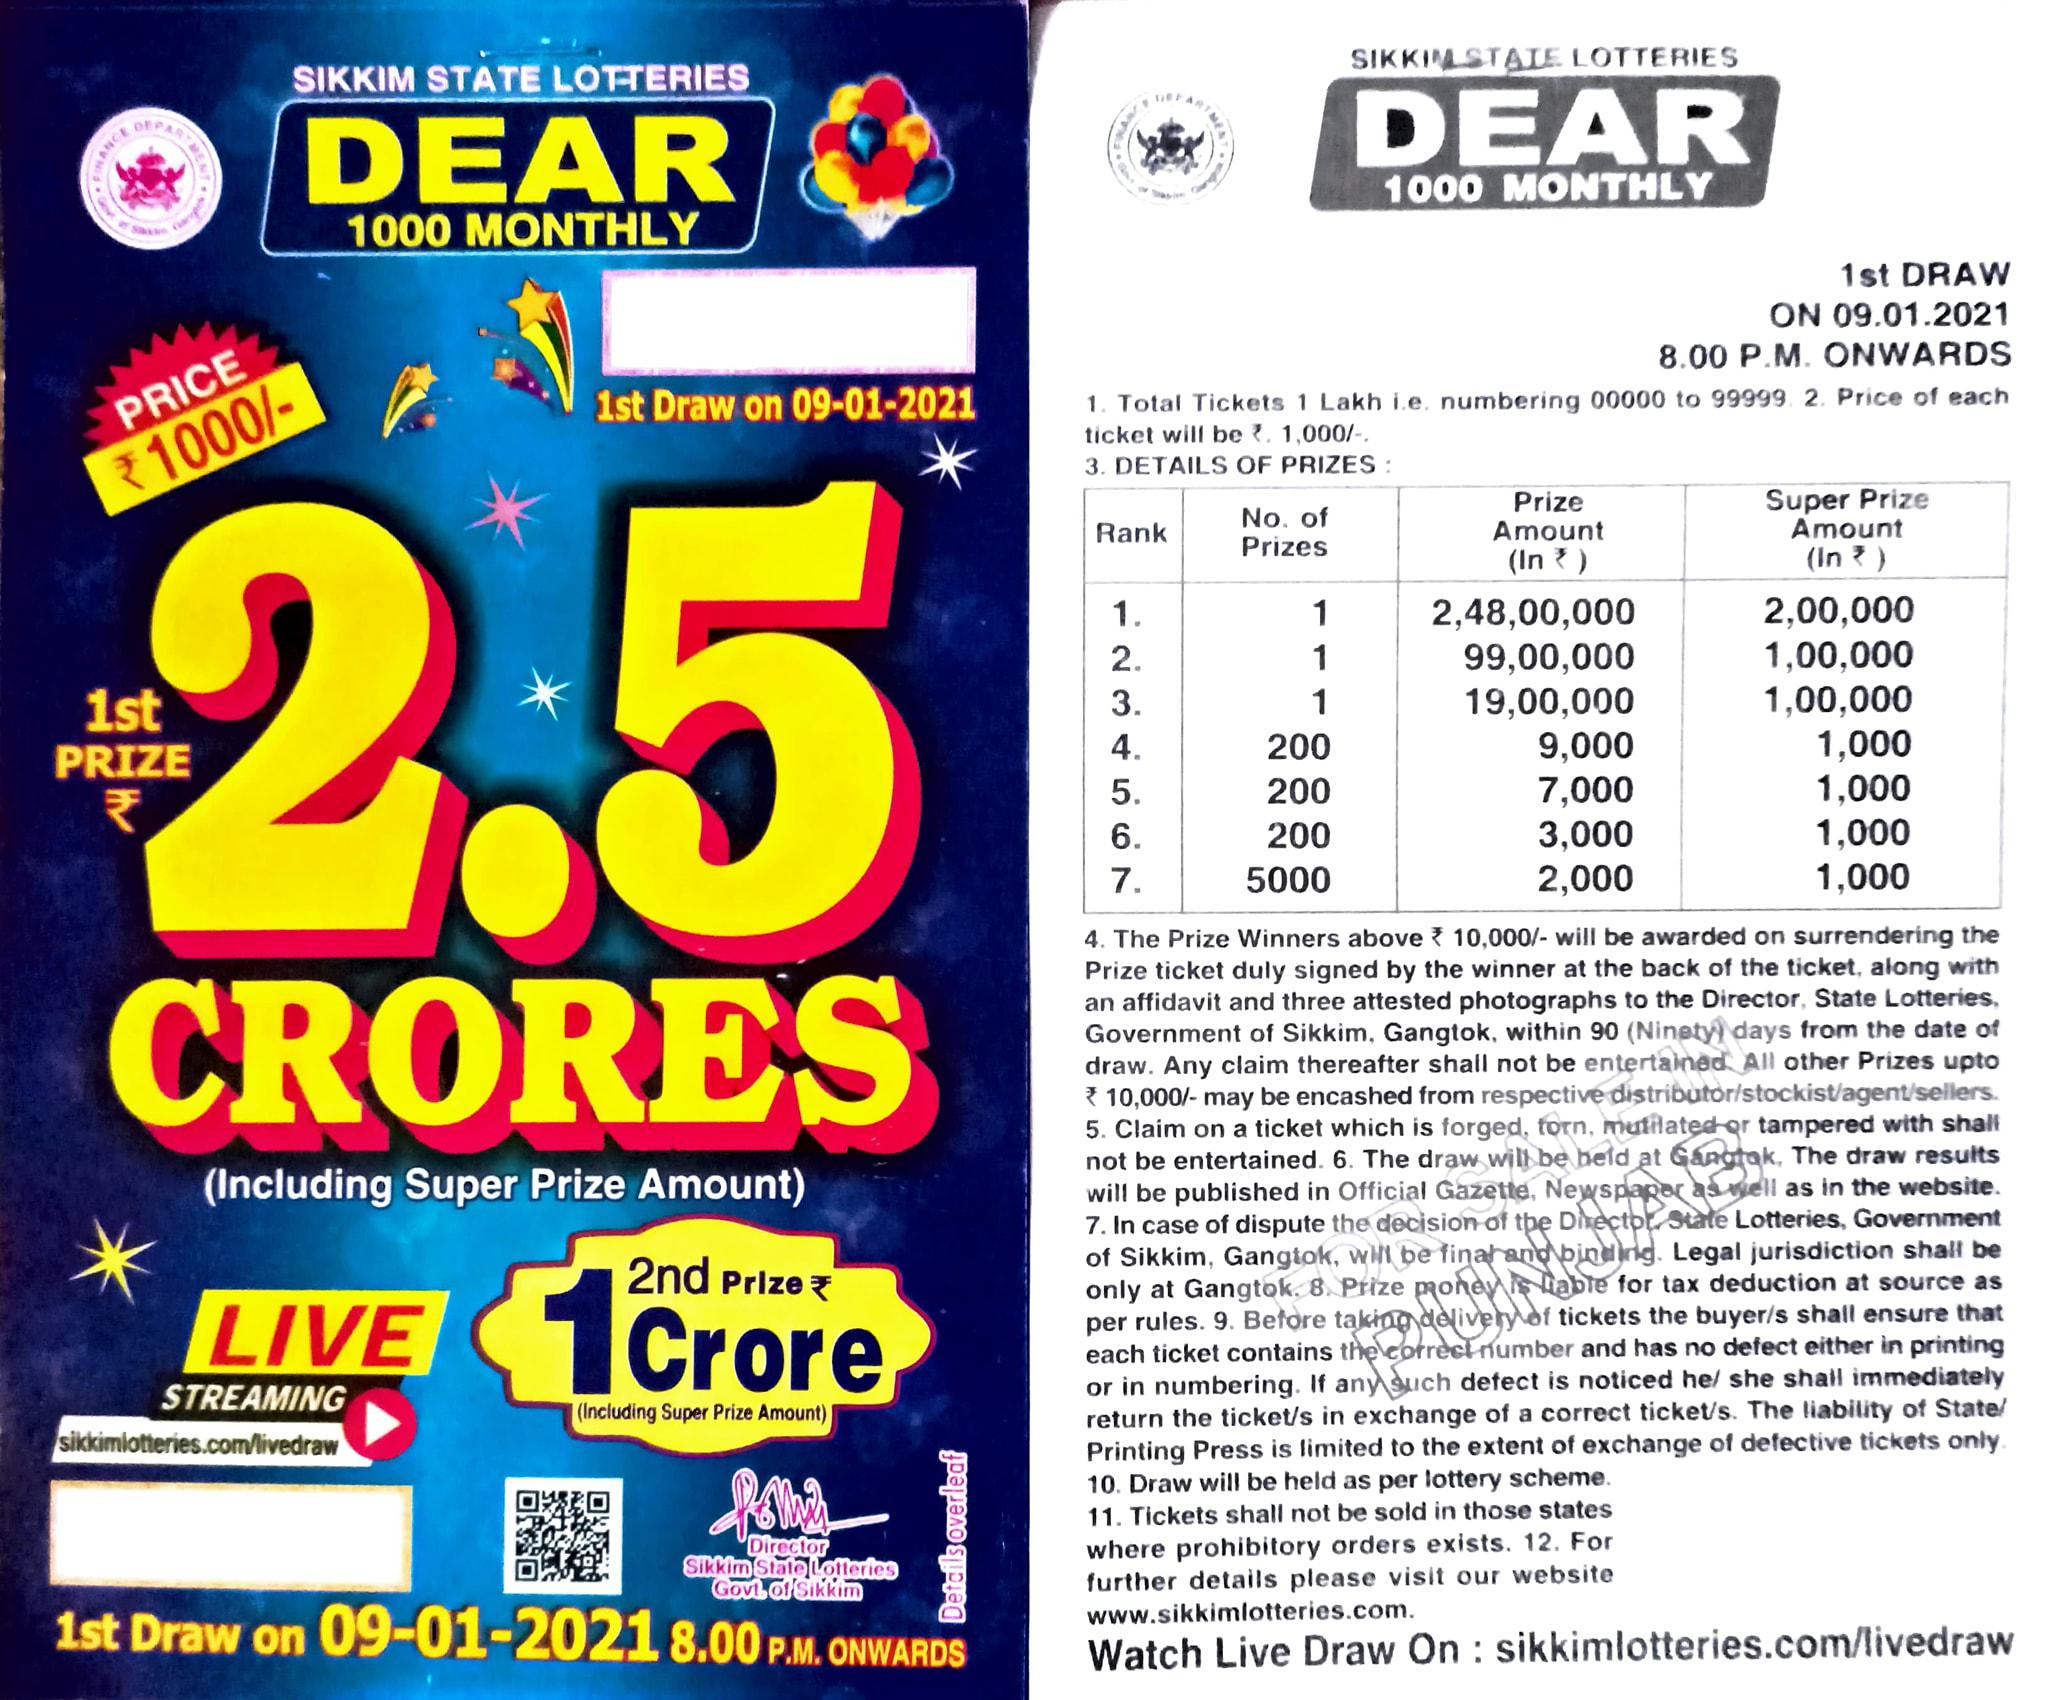 Sikkim_state_lotteries_dear_1000_monthly_09.01.2021